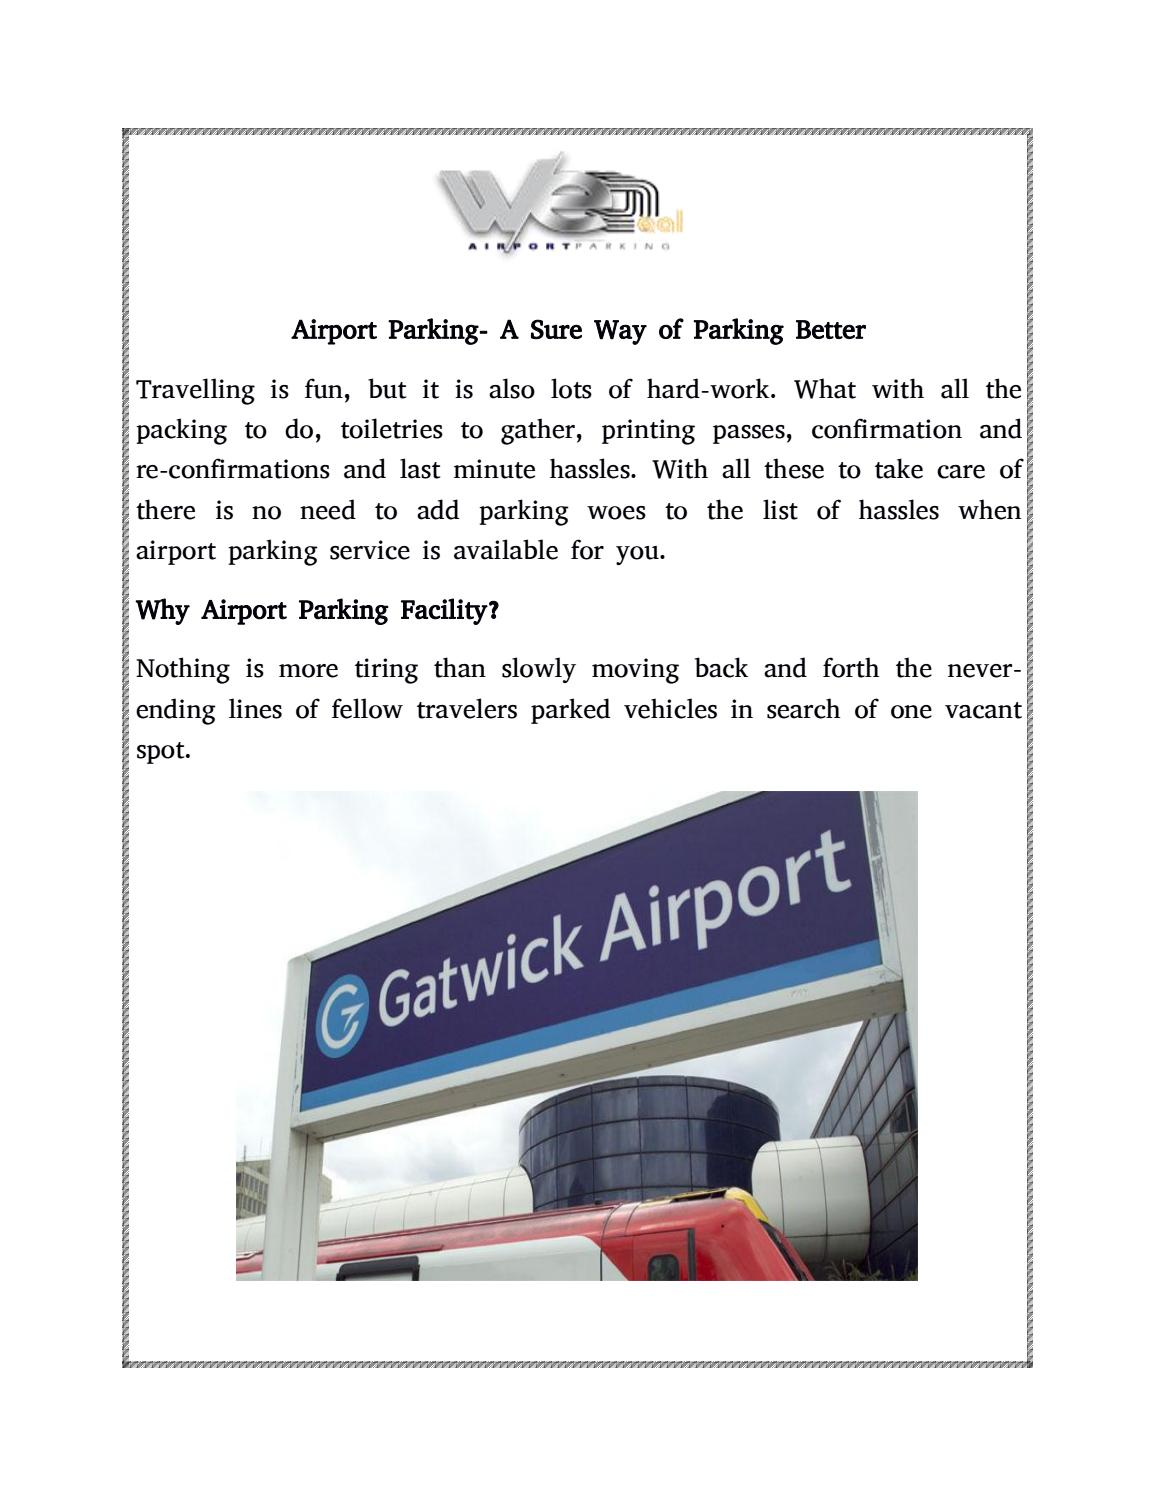 Gatwick Meet And Greet Car Parking Image Collections Greetings